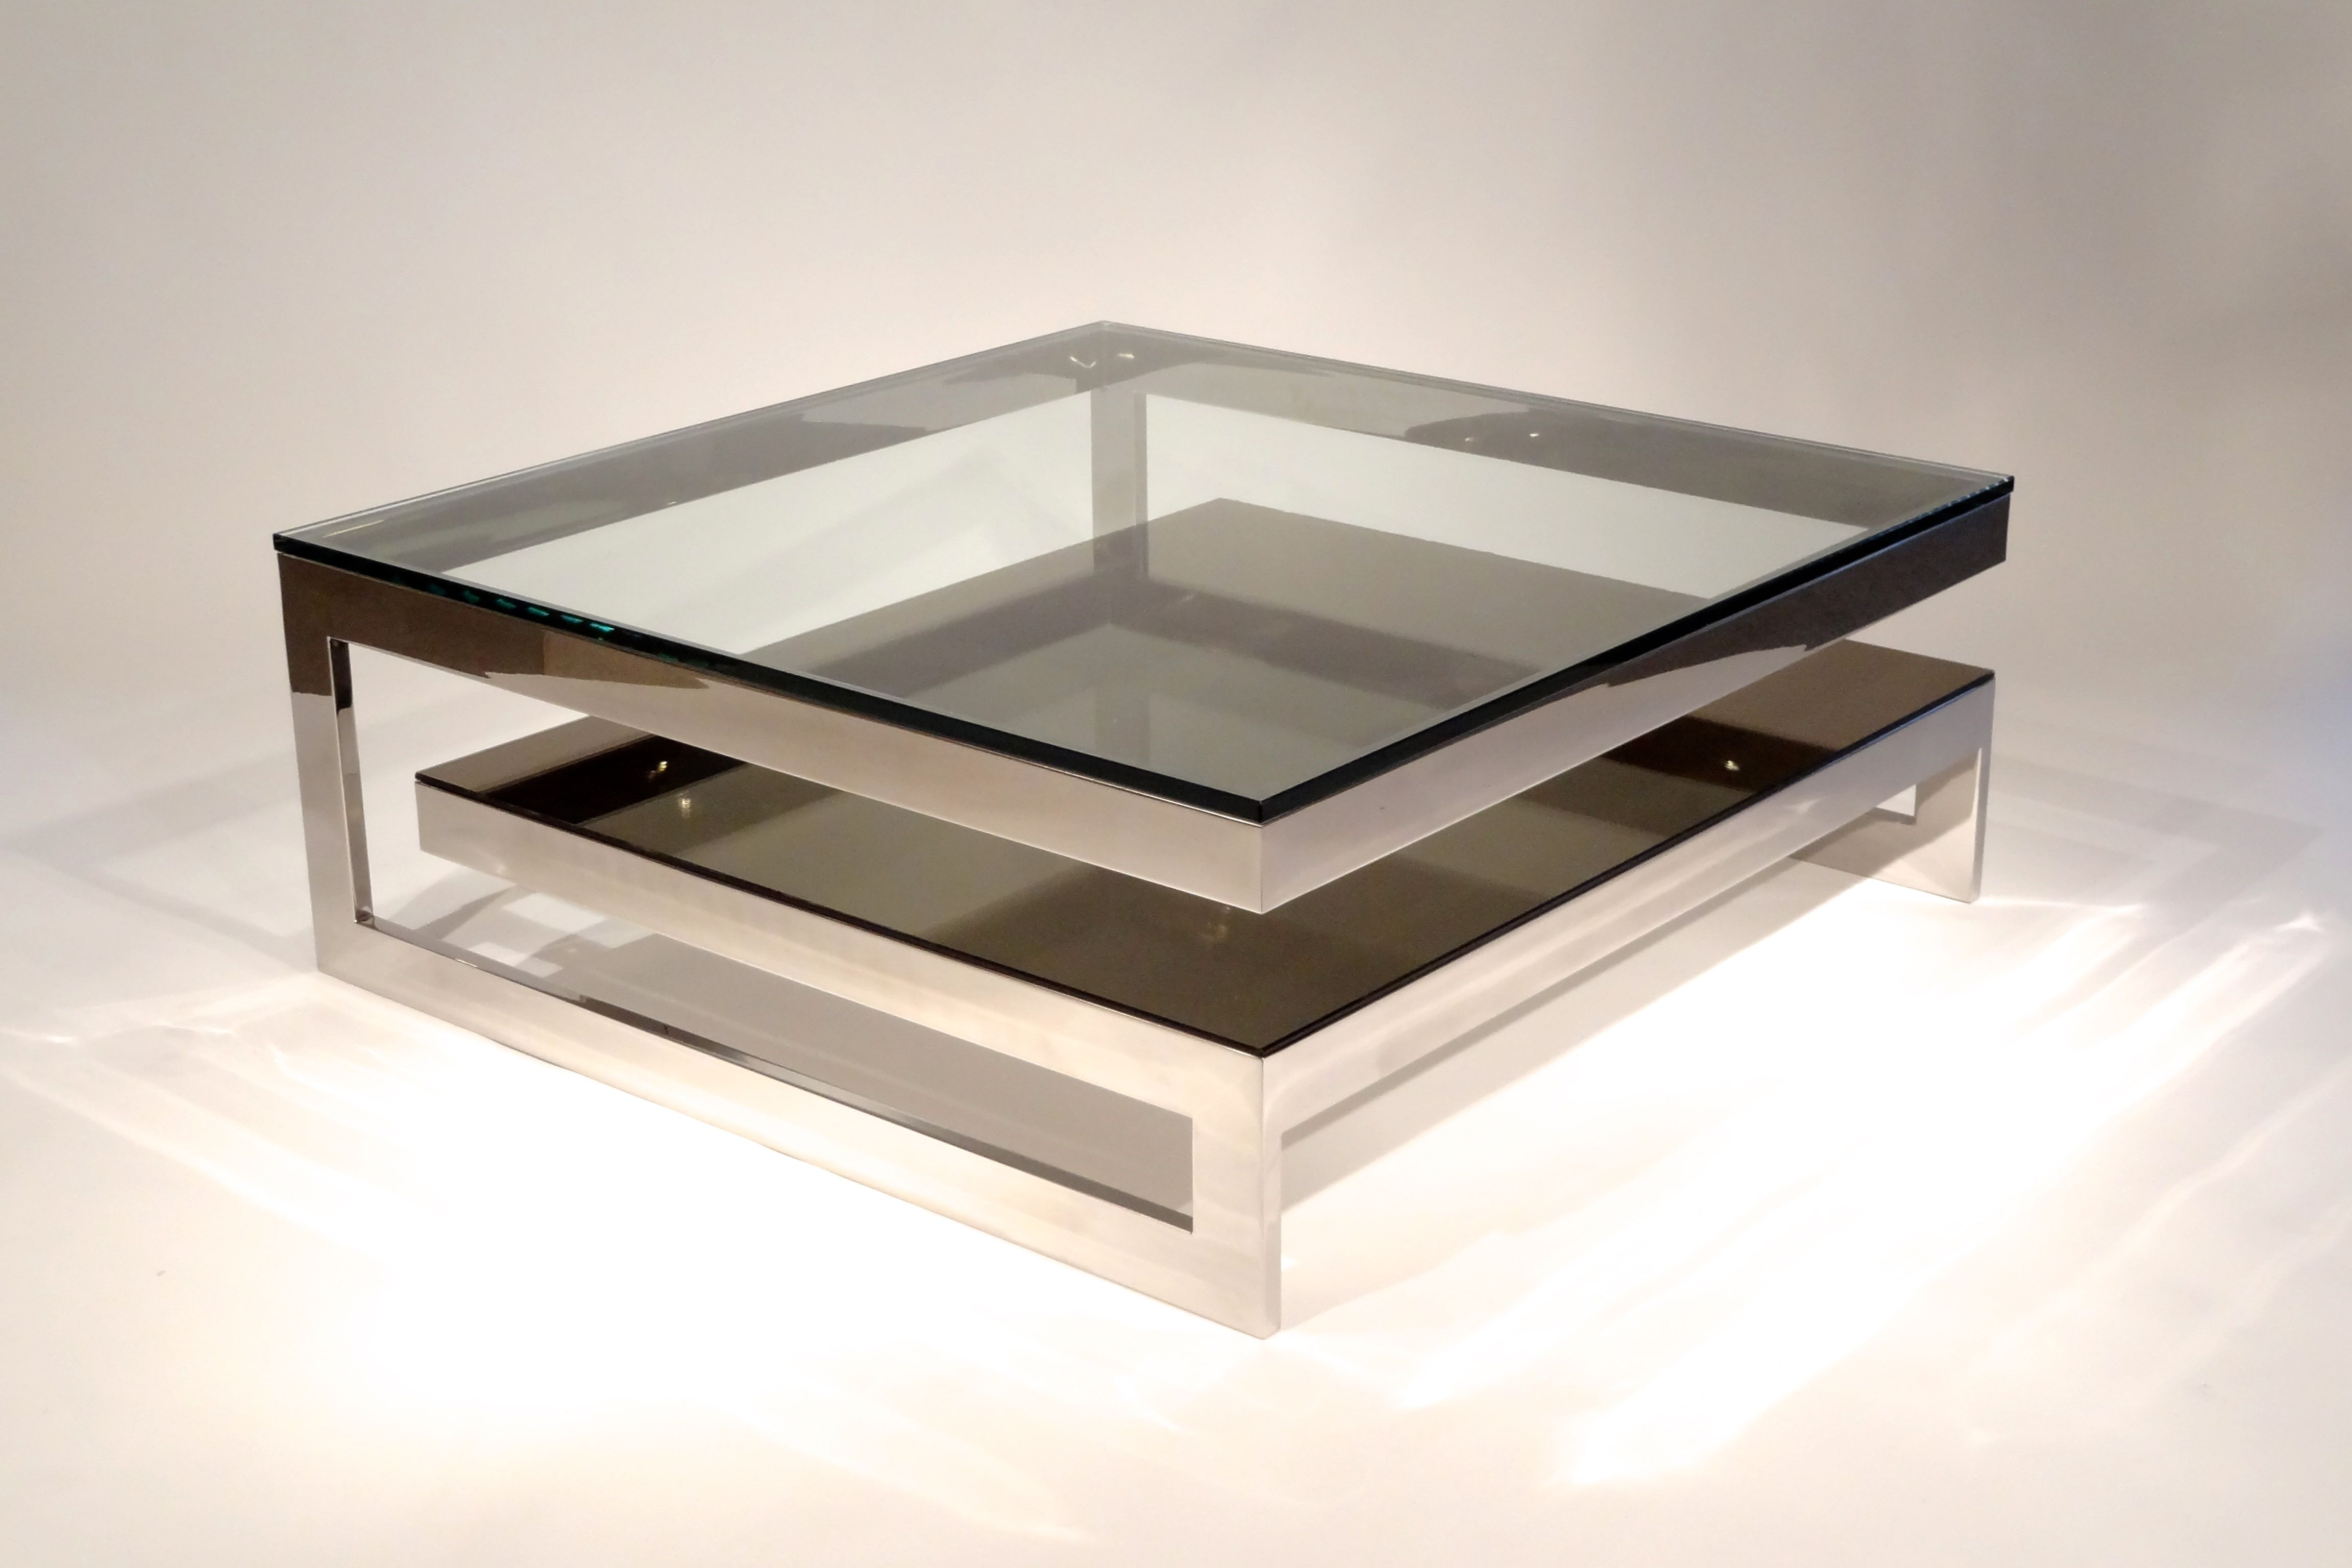 Mesmerizing mirrored coffee table for your living room decor and furniture adorable two tier Metal living room furniture